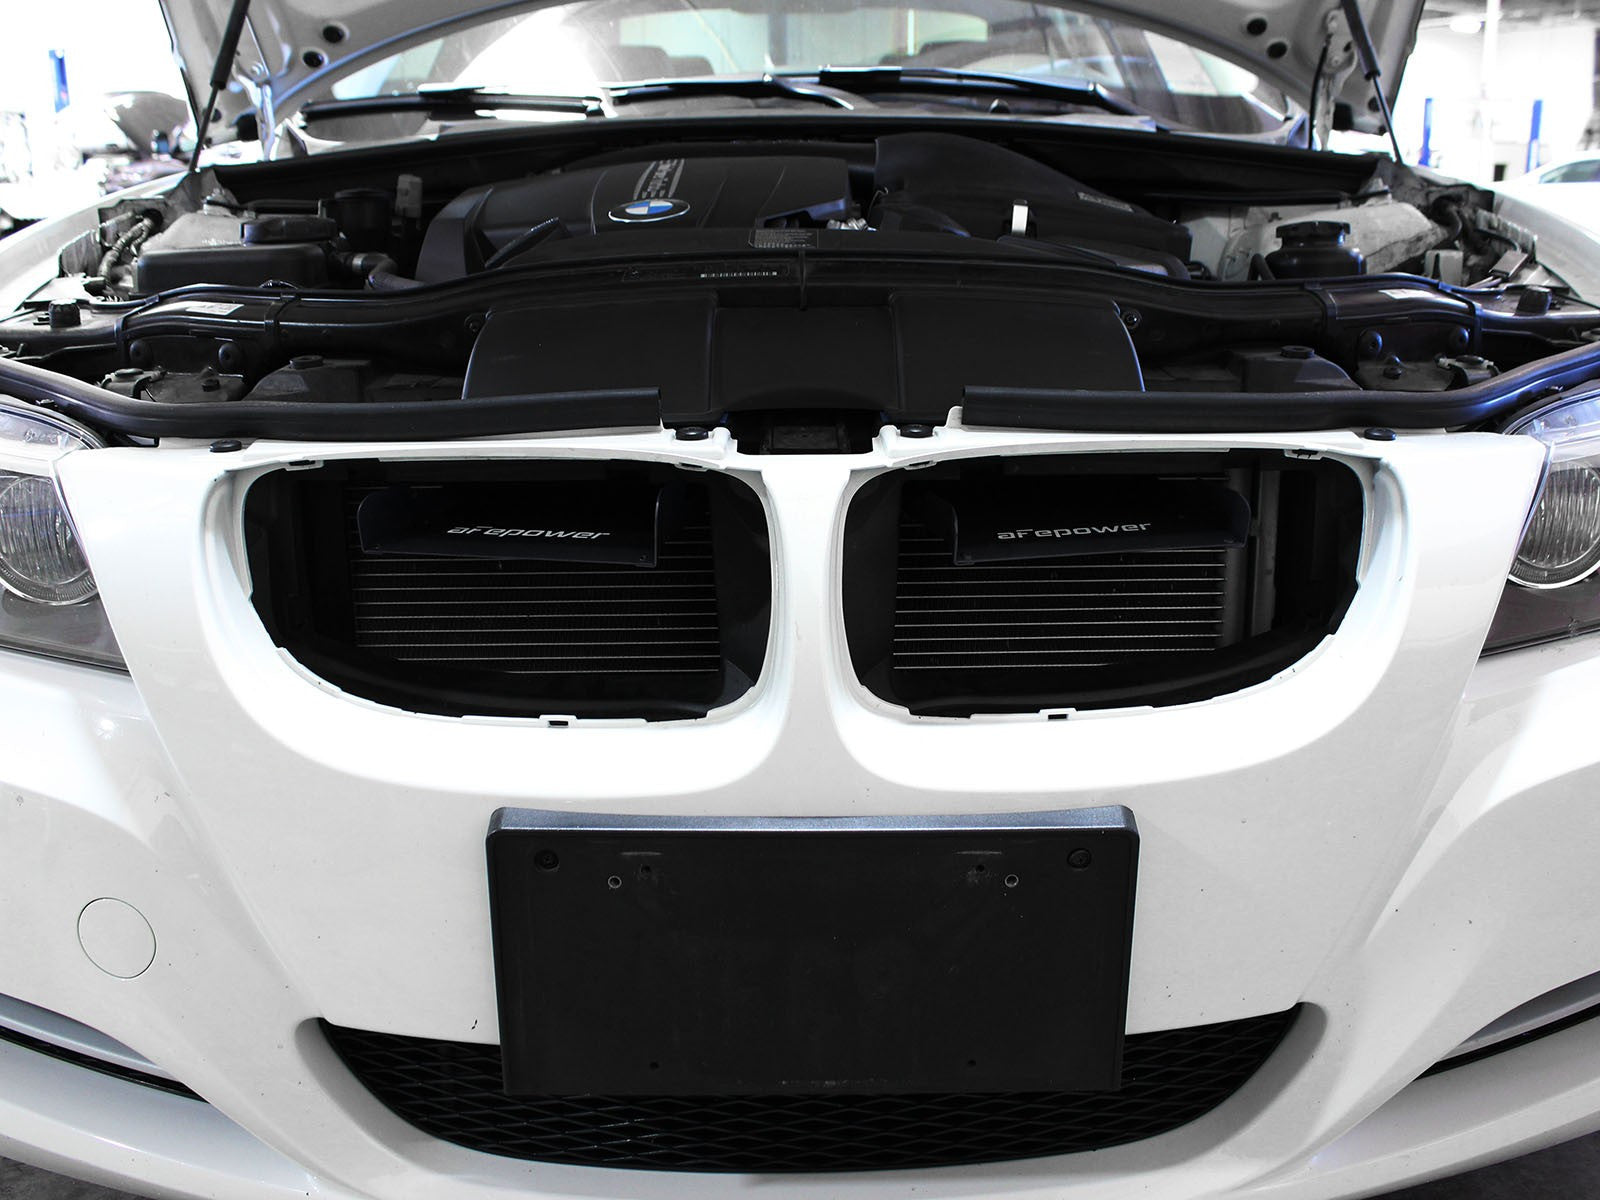 aFe POWER E9X 335 N54 Magnum FORCE Stage-2 Pro 5R Cold Air Intake System - Bimmer Performance Center